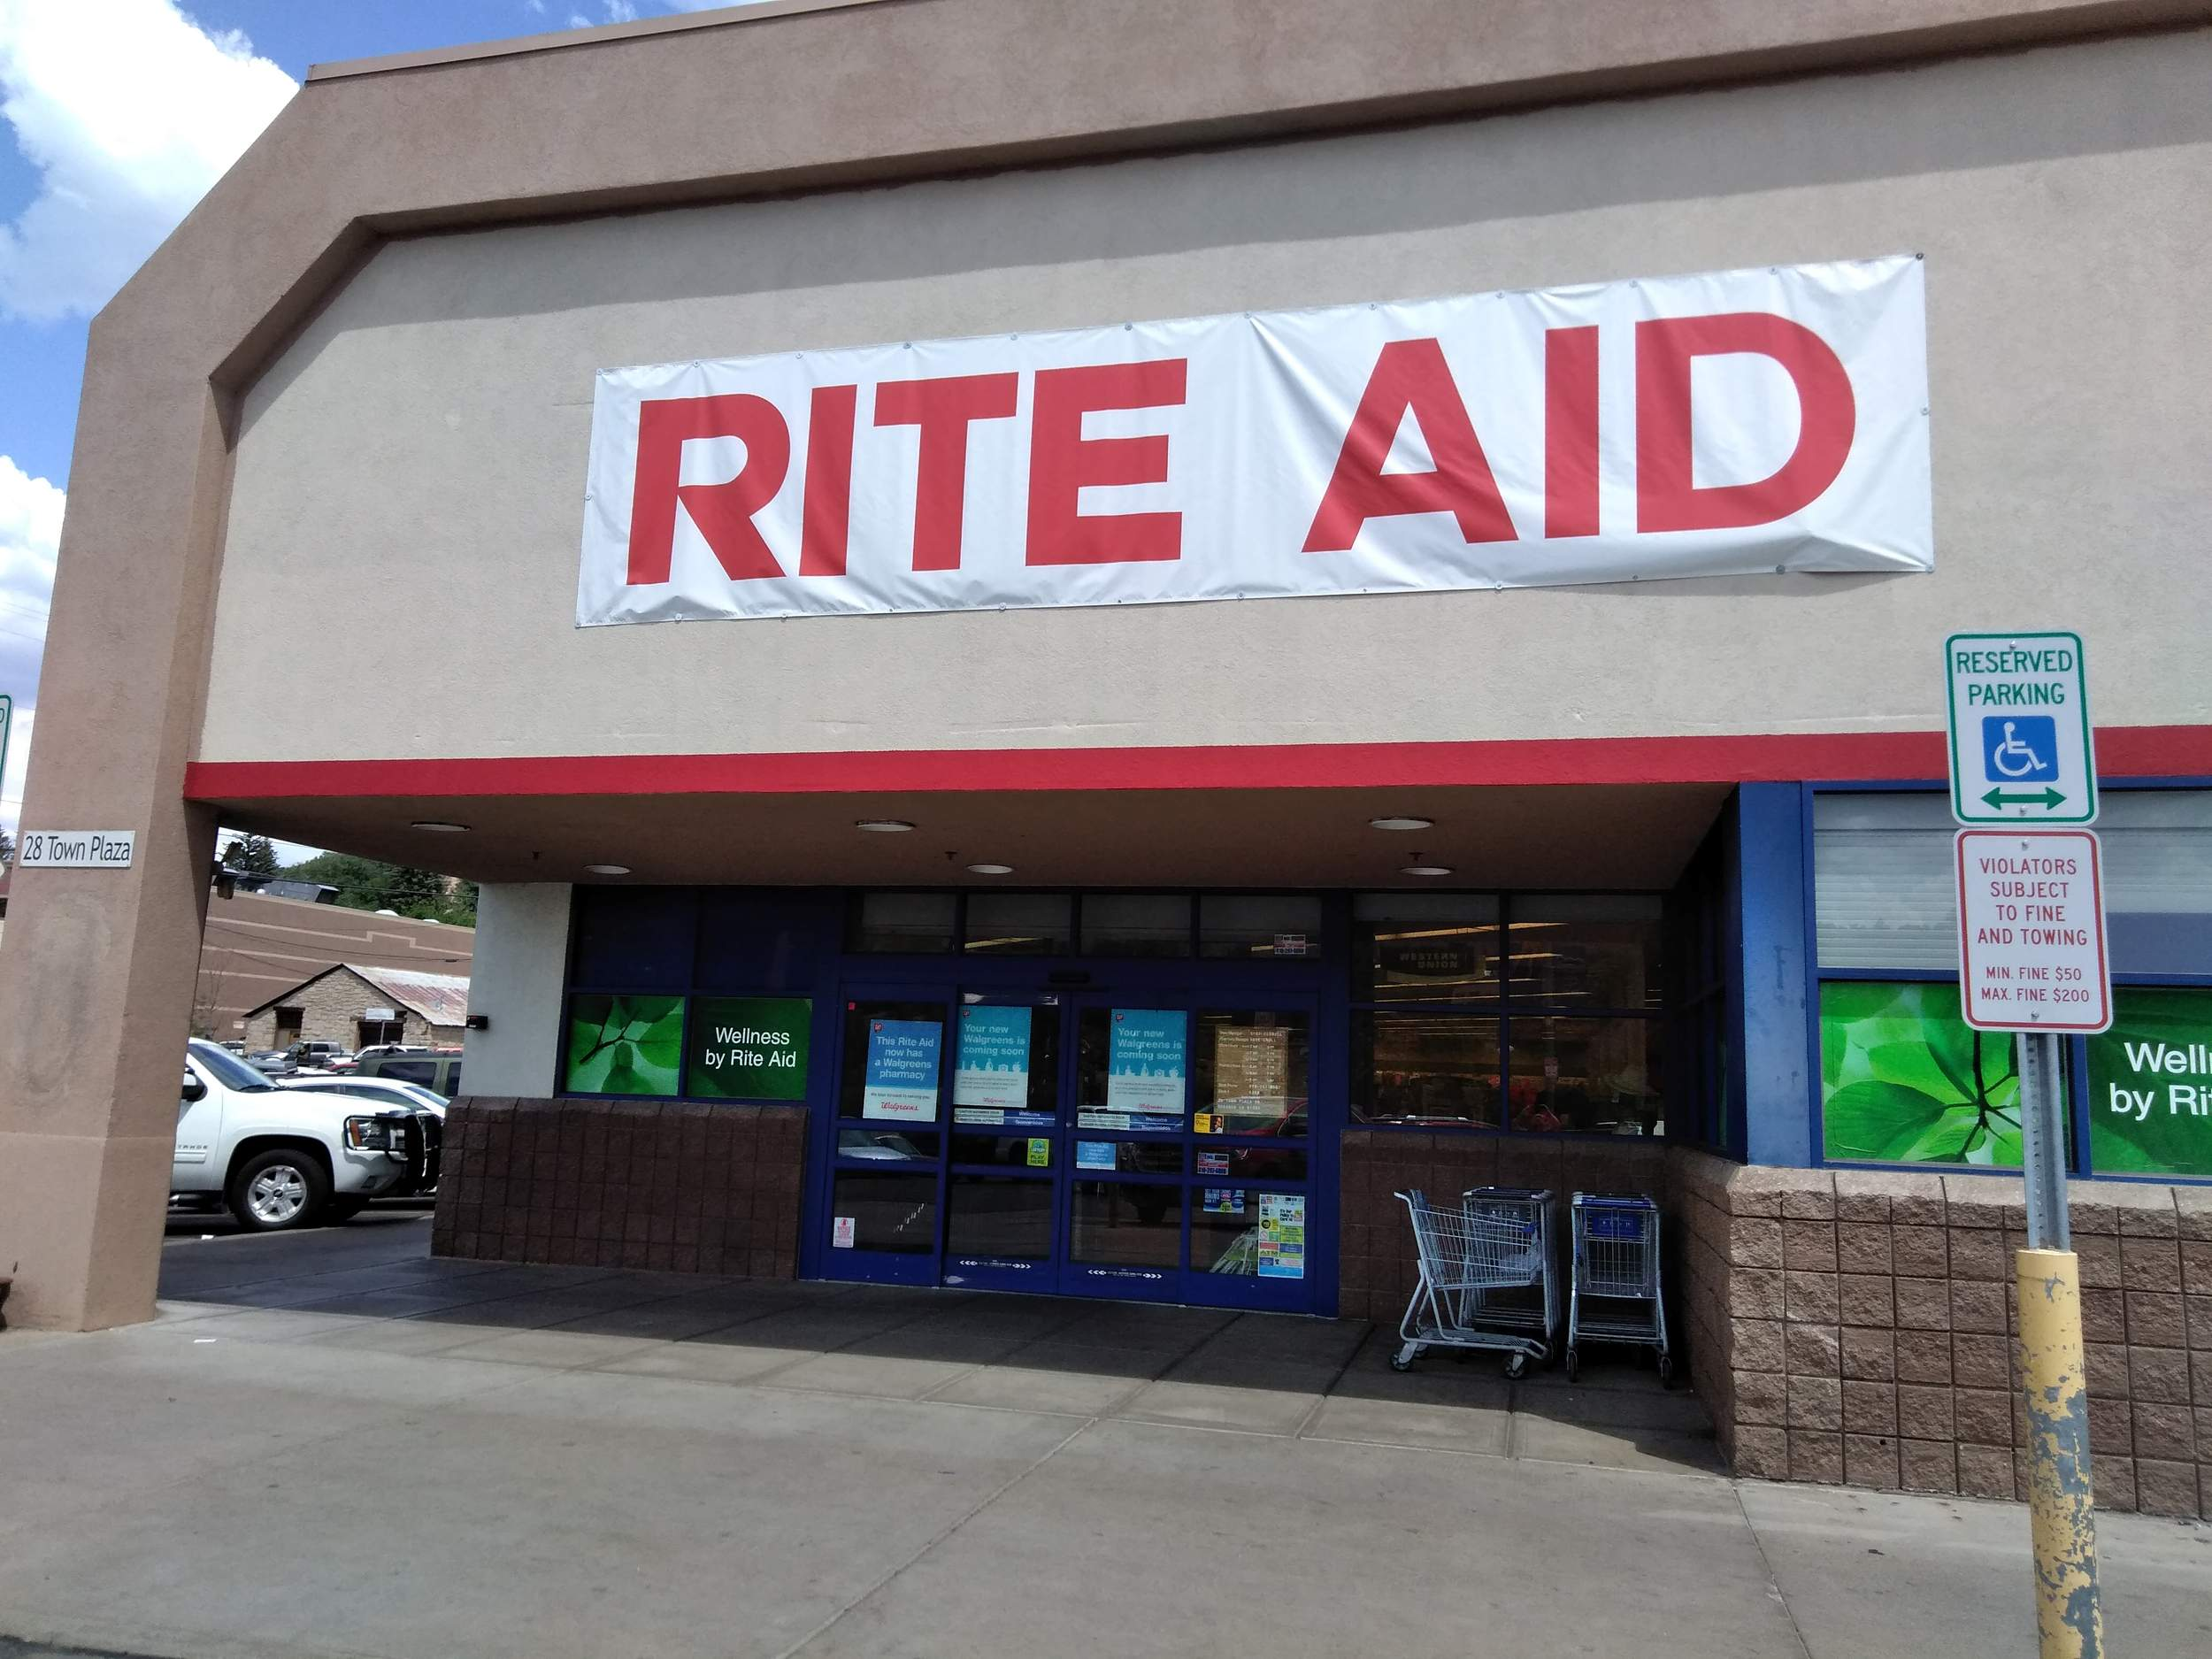 the rite aid in town plaza is transitioning to become a walgreens the store is expected to be under the walgreens banner by the end of the month